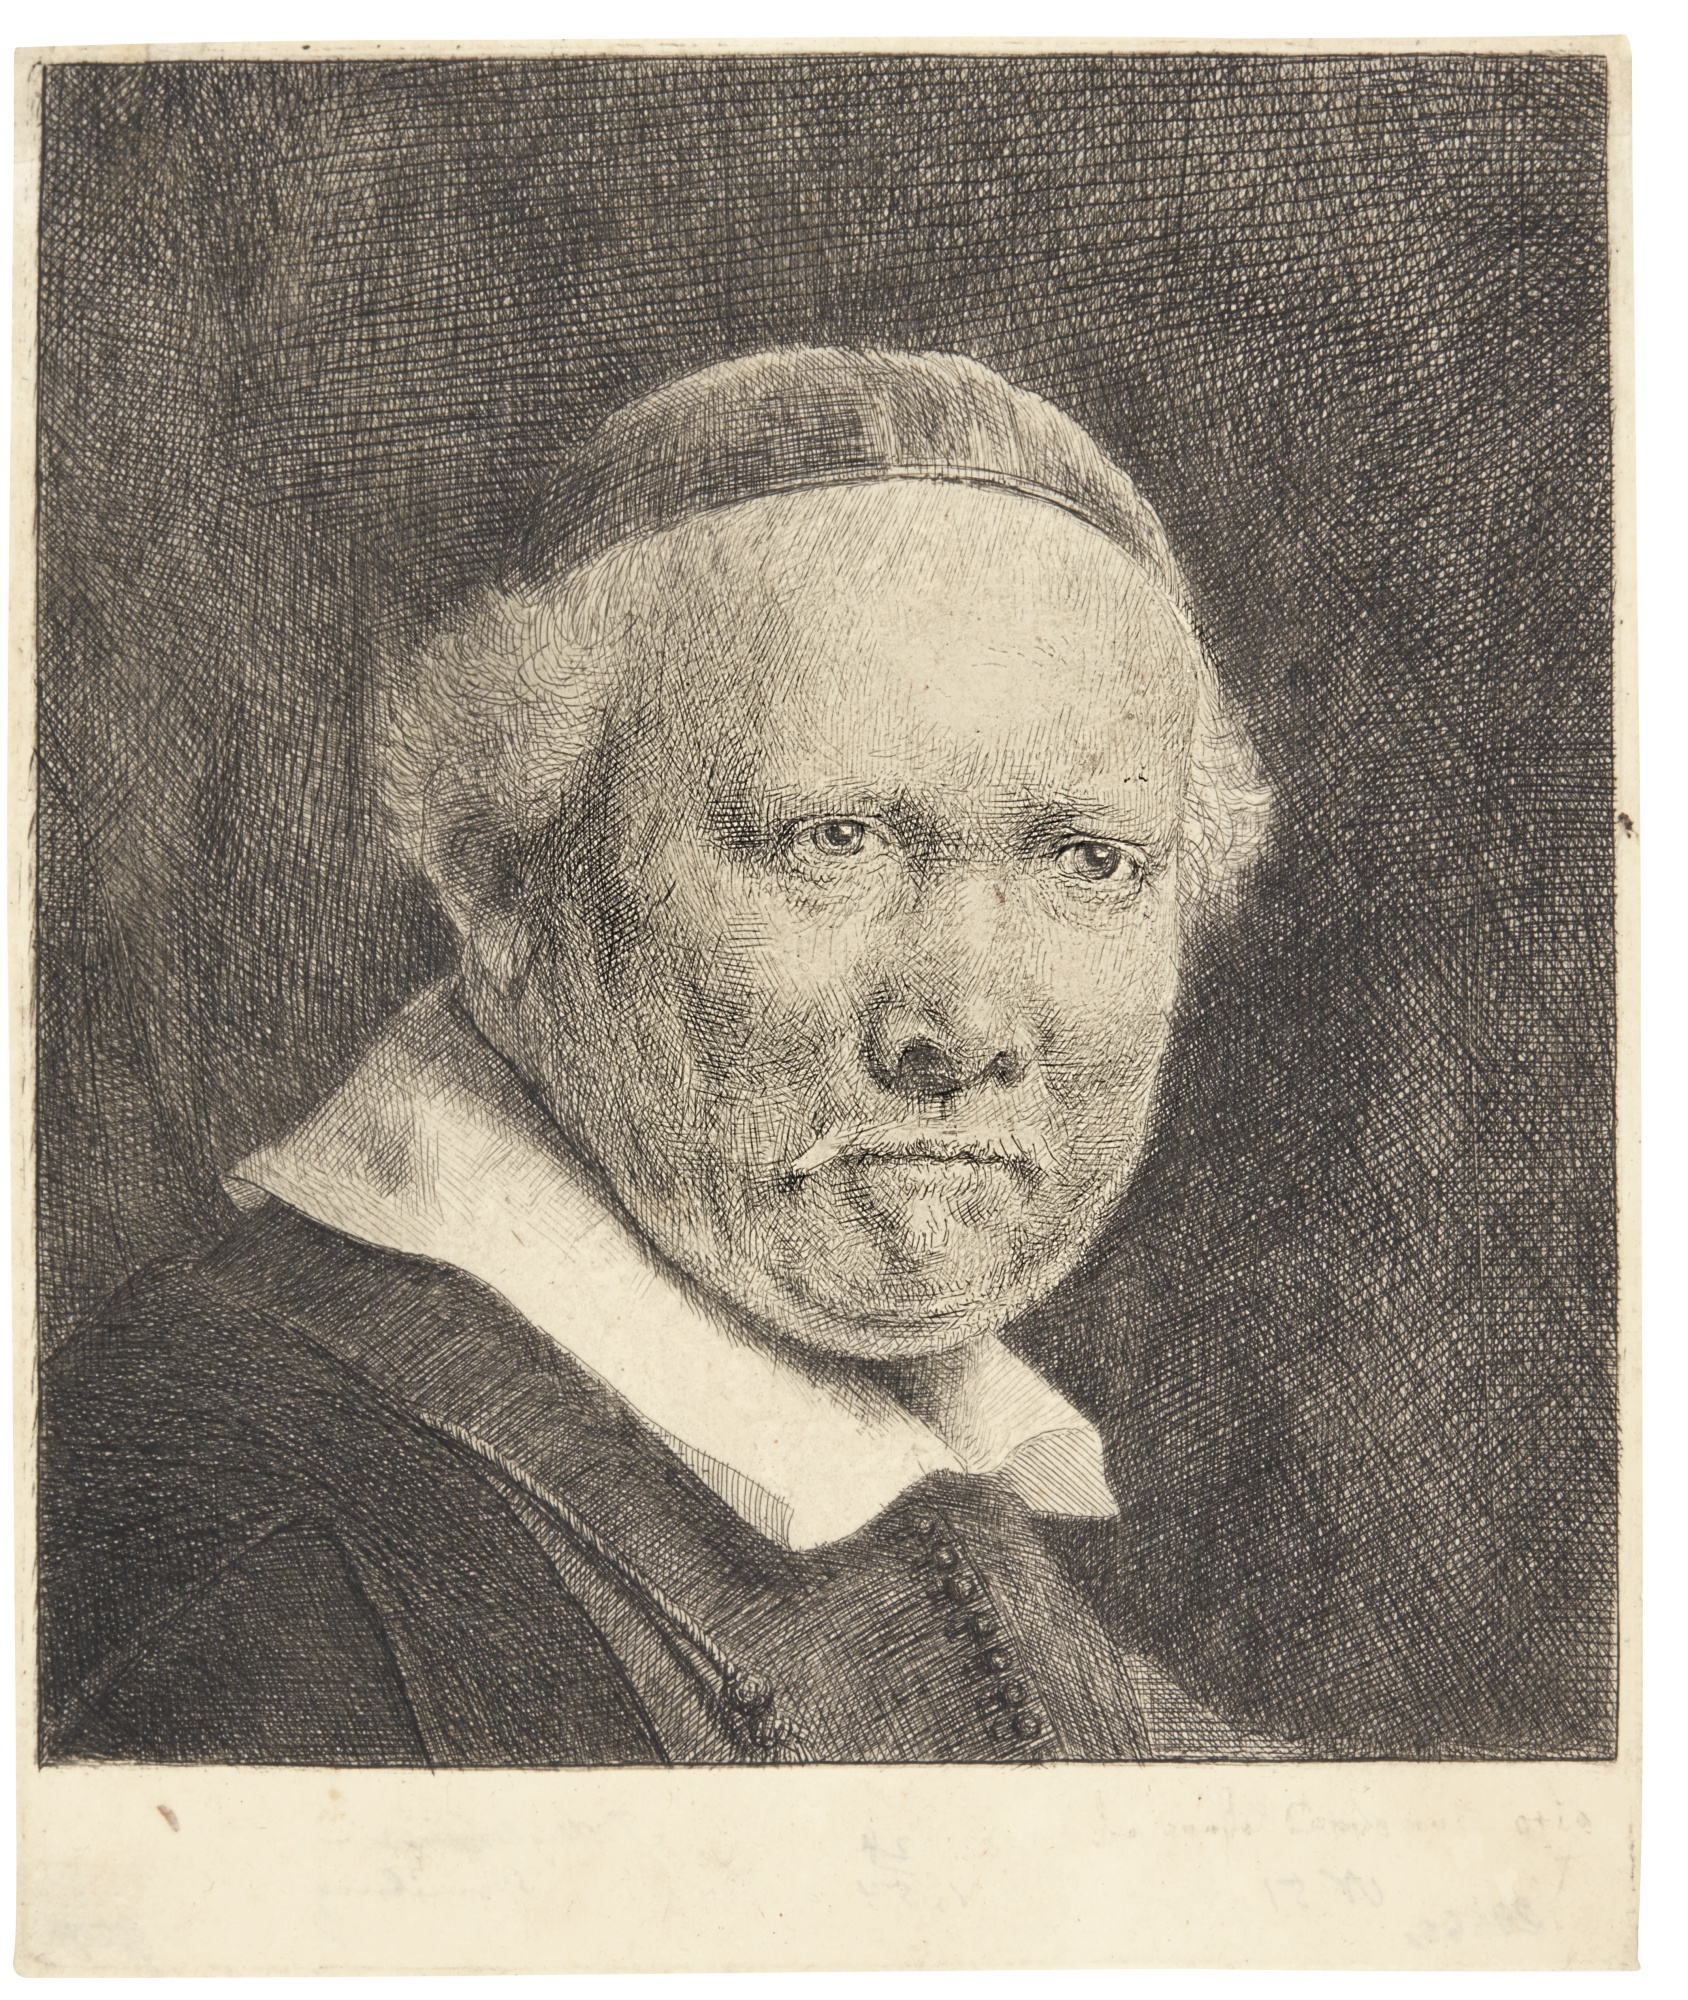 Rembrandt van Rijn-Lieven Willemsz. Van Coppenol, Writing Master: The Larger Plate (B., Holl. 283; New Holl. 306; H. 300)-1658